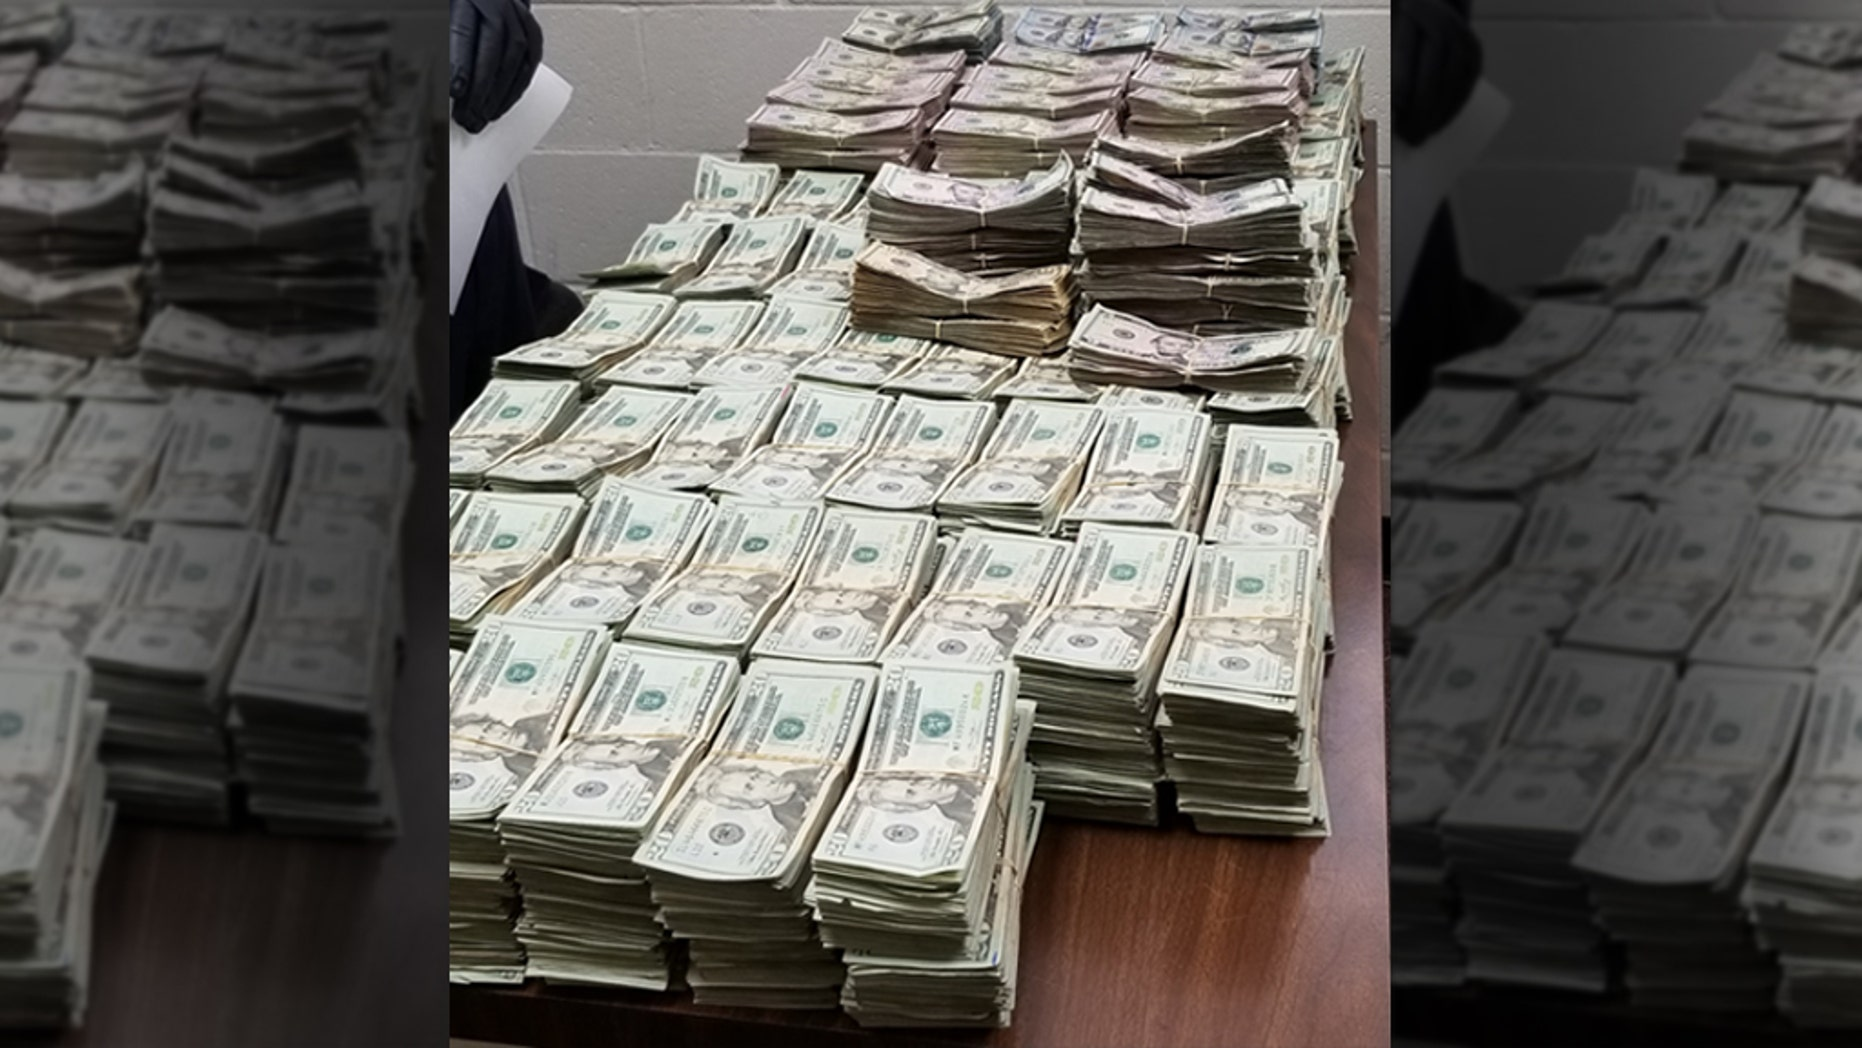 Stacks of bills totaling more than $1 million in unreported currency were seized by CBP officers during a recent 35-day period at Hidalgo/Pharr/Anzalduas Port of Entry.